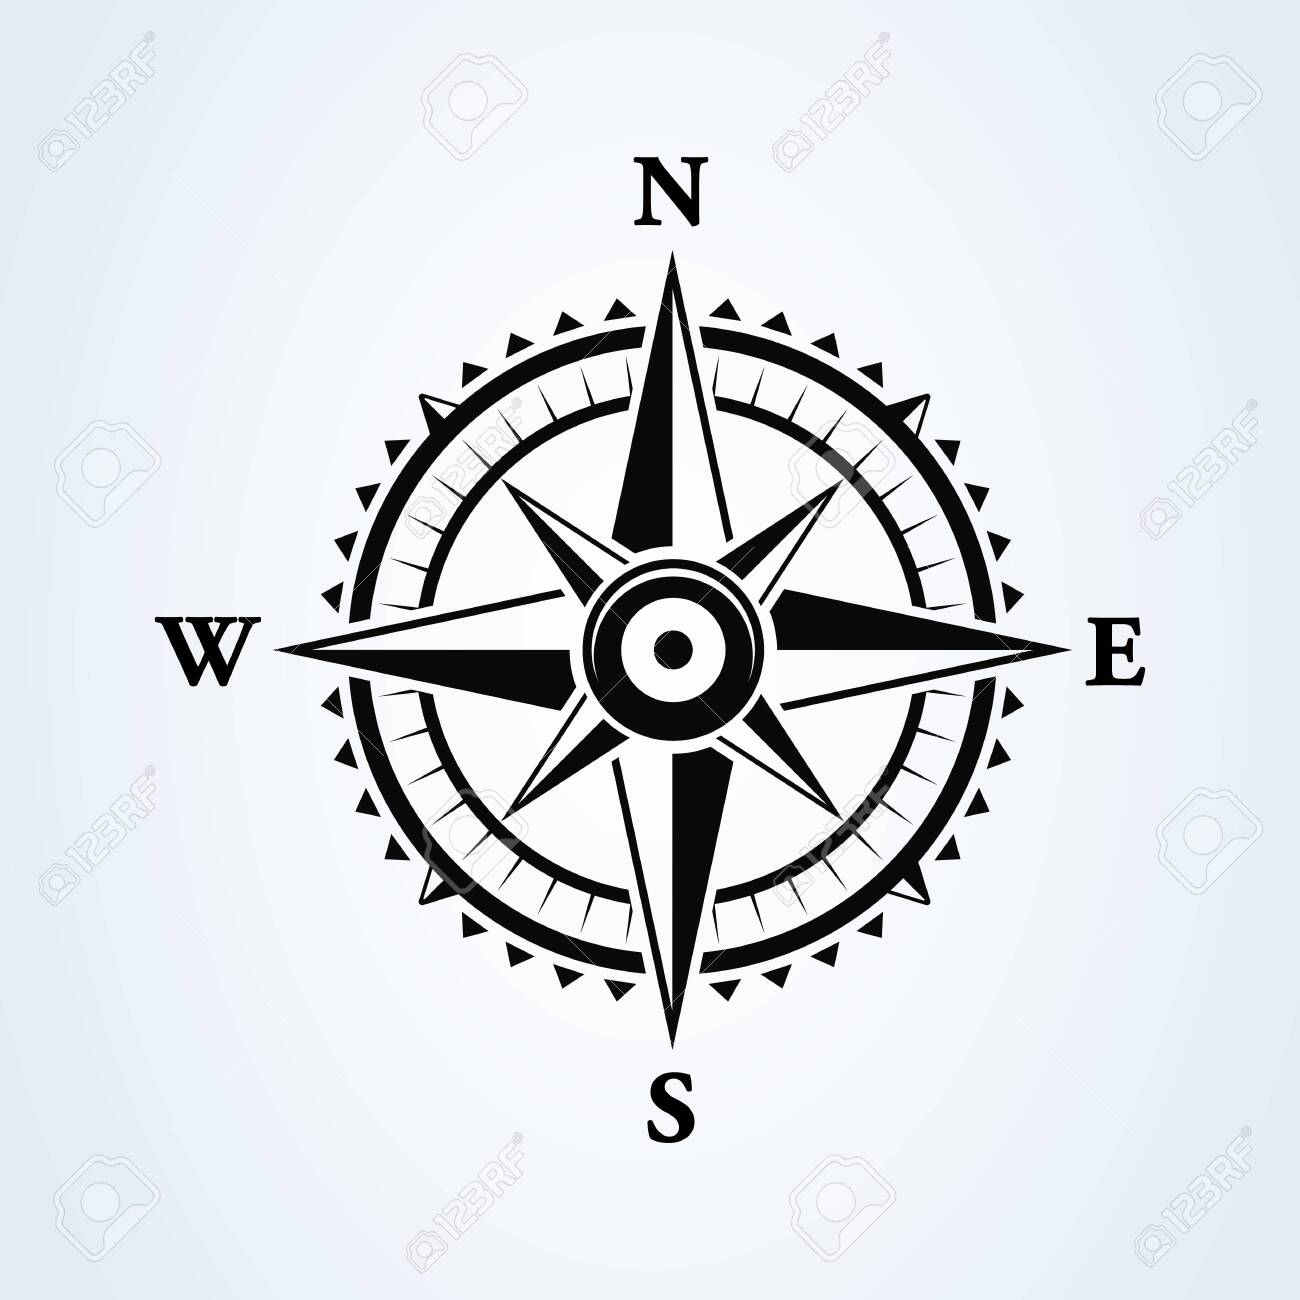 Compass wind rose icon isolated on white. Vector illustration. - 146901536